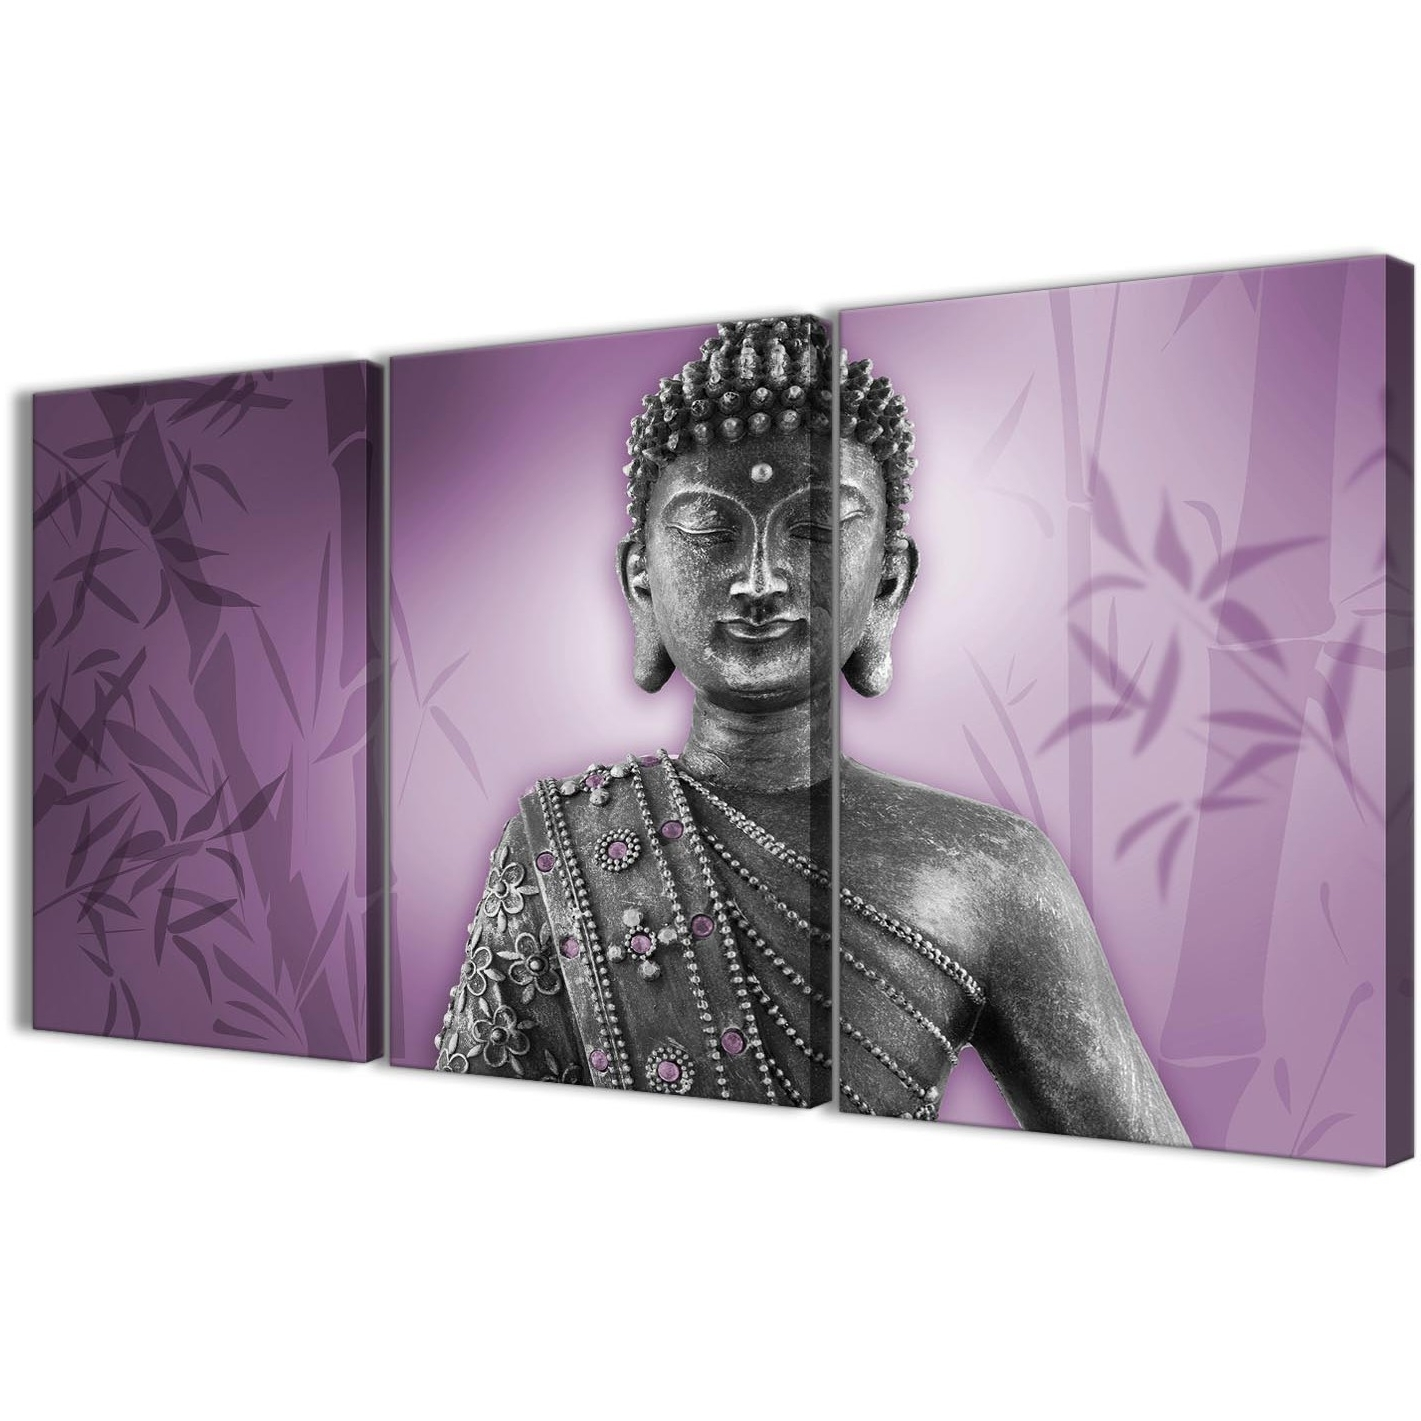 2018 Purple And Grey Silver Canvas Art Prints Of Buddha – Multi Set Of 3 For Wall Art Prints (View 11 of 20)